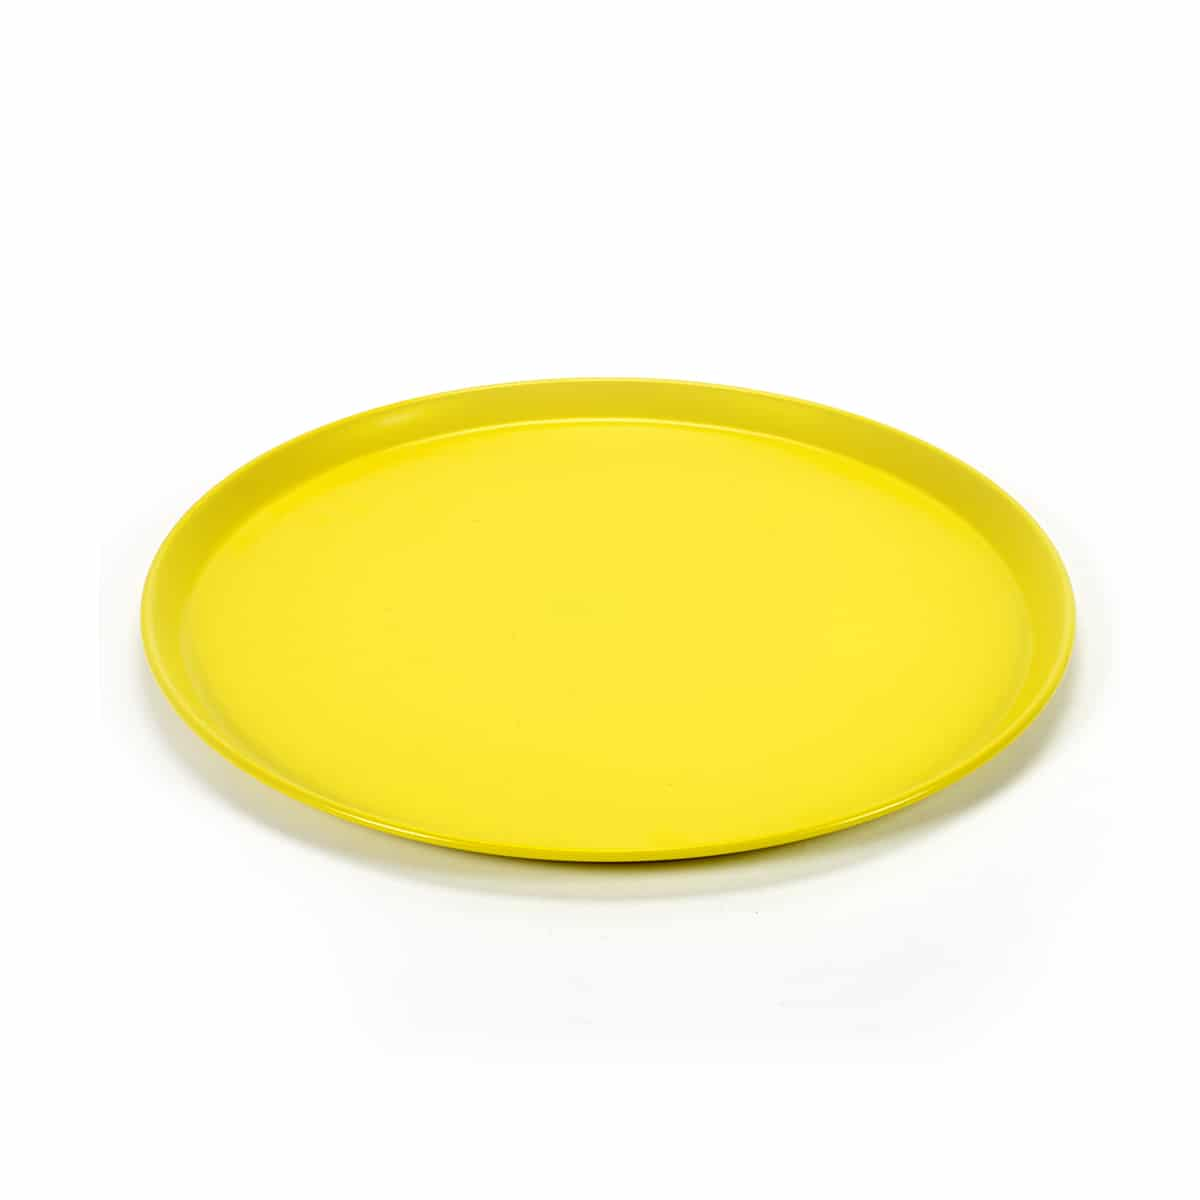 Plateau Tray round medium jaune Jansen+co zeeloft